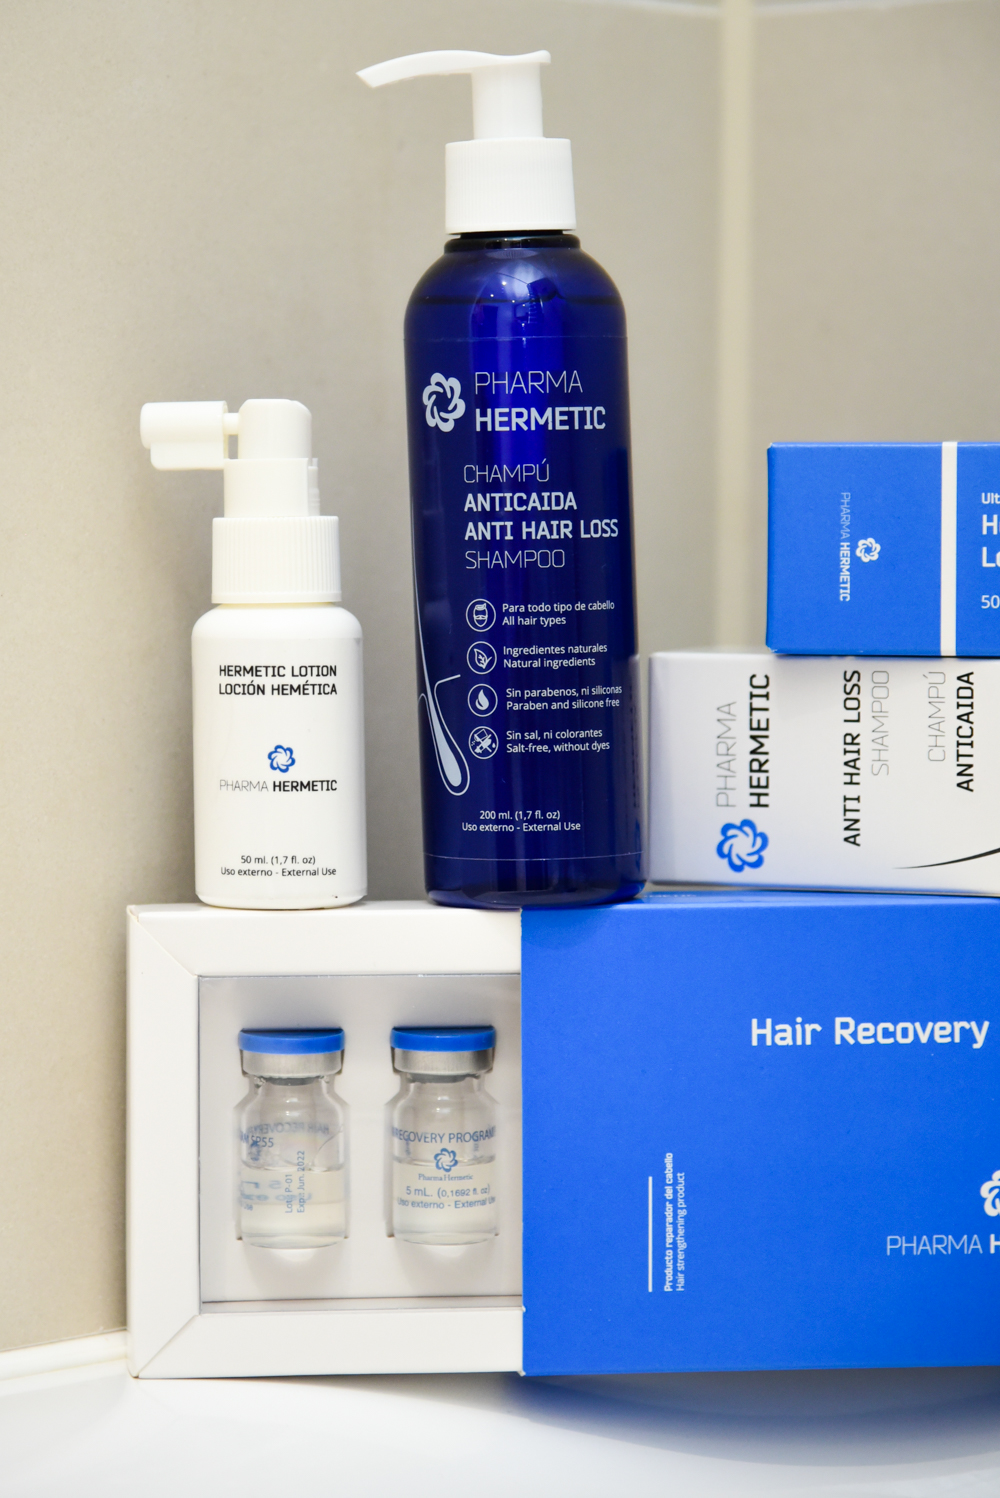 Pharma Hermetic Home and clinic based cosmetic treatments for hair loss